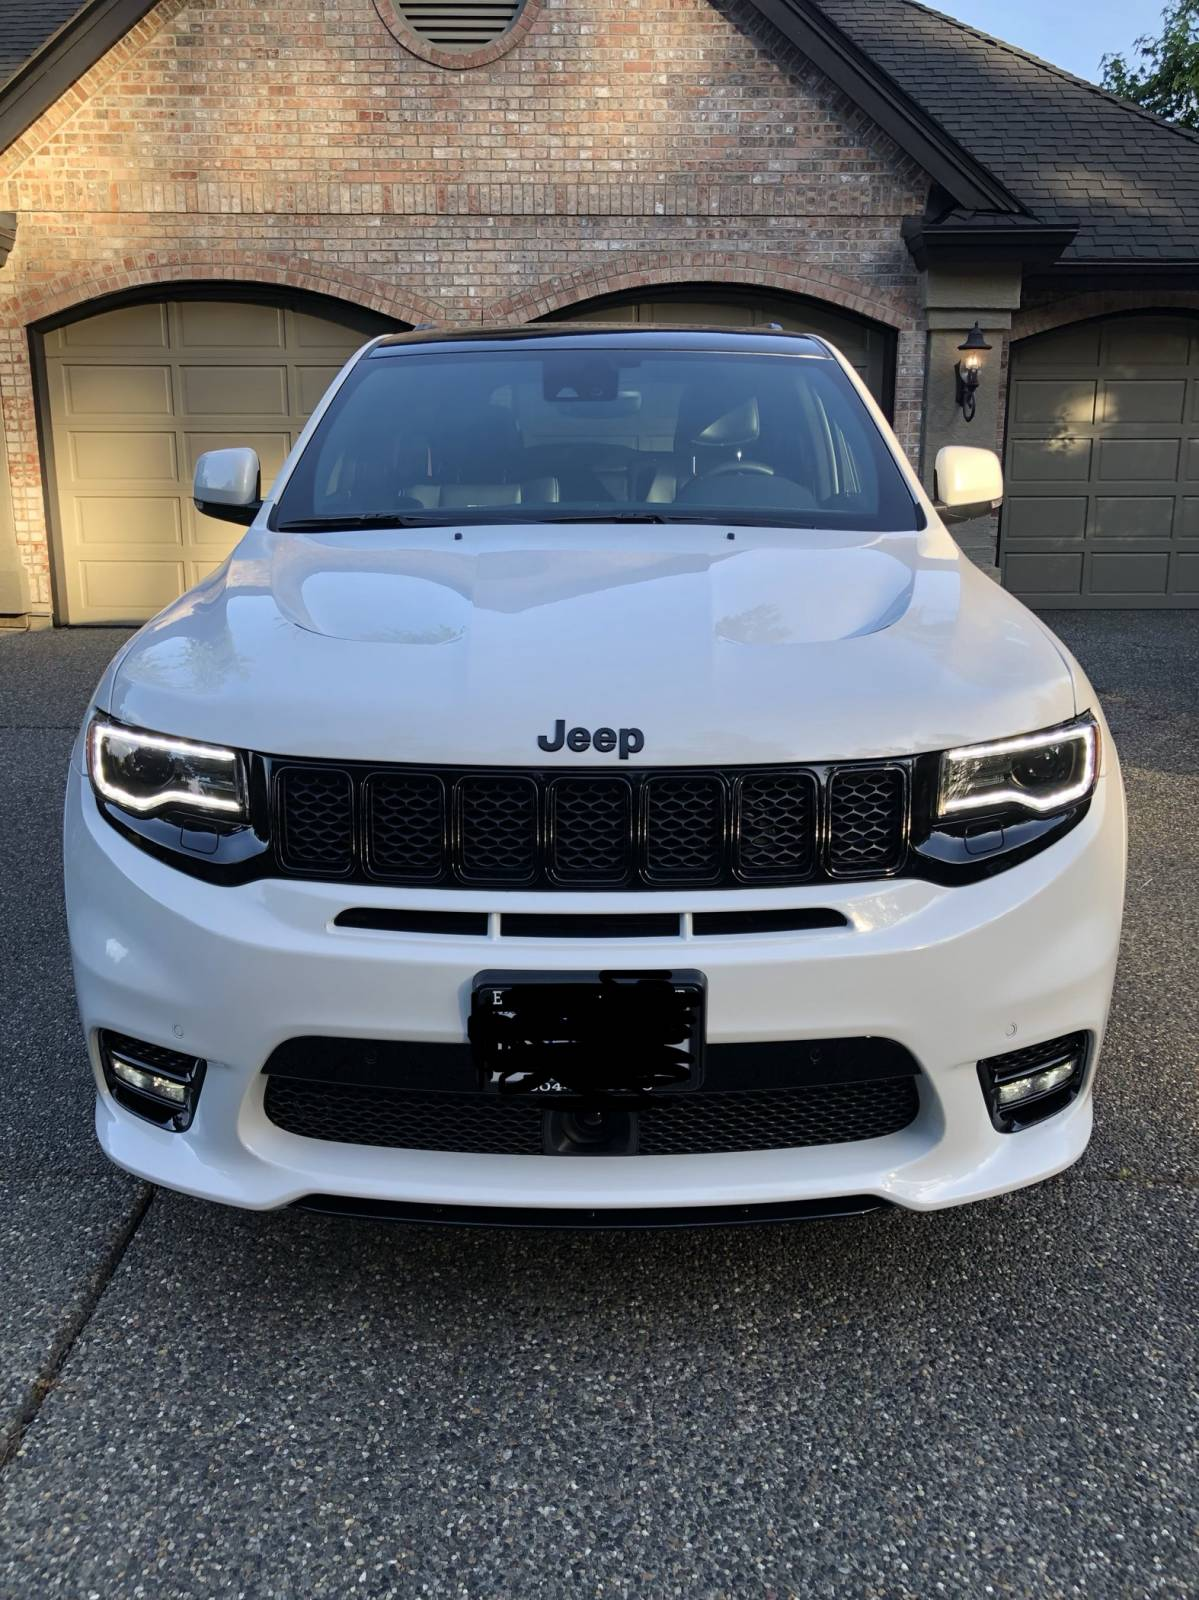 Car Lease Vancouver >> Jeep Lease Takeover in Vancouver, BC: 2018 Jeep Grand Cherokee SRT Automatic AWD ID:#5032 ...